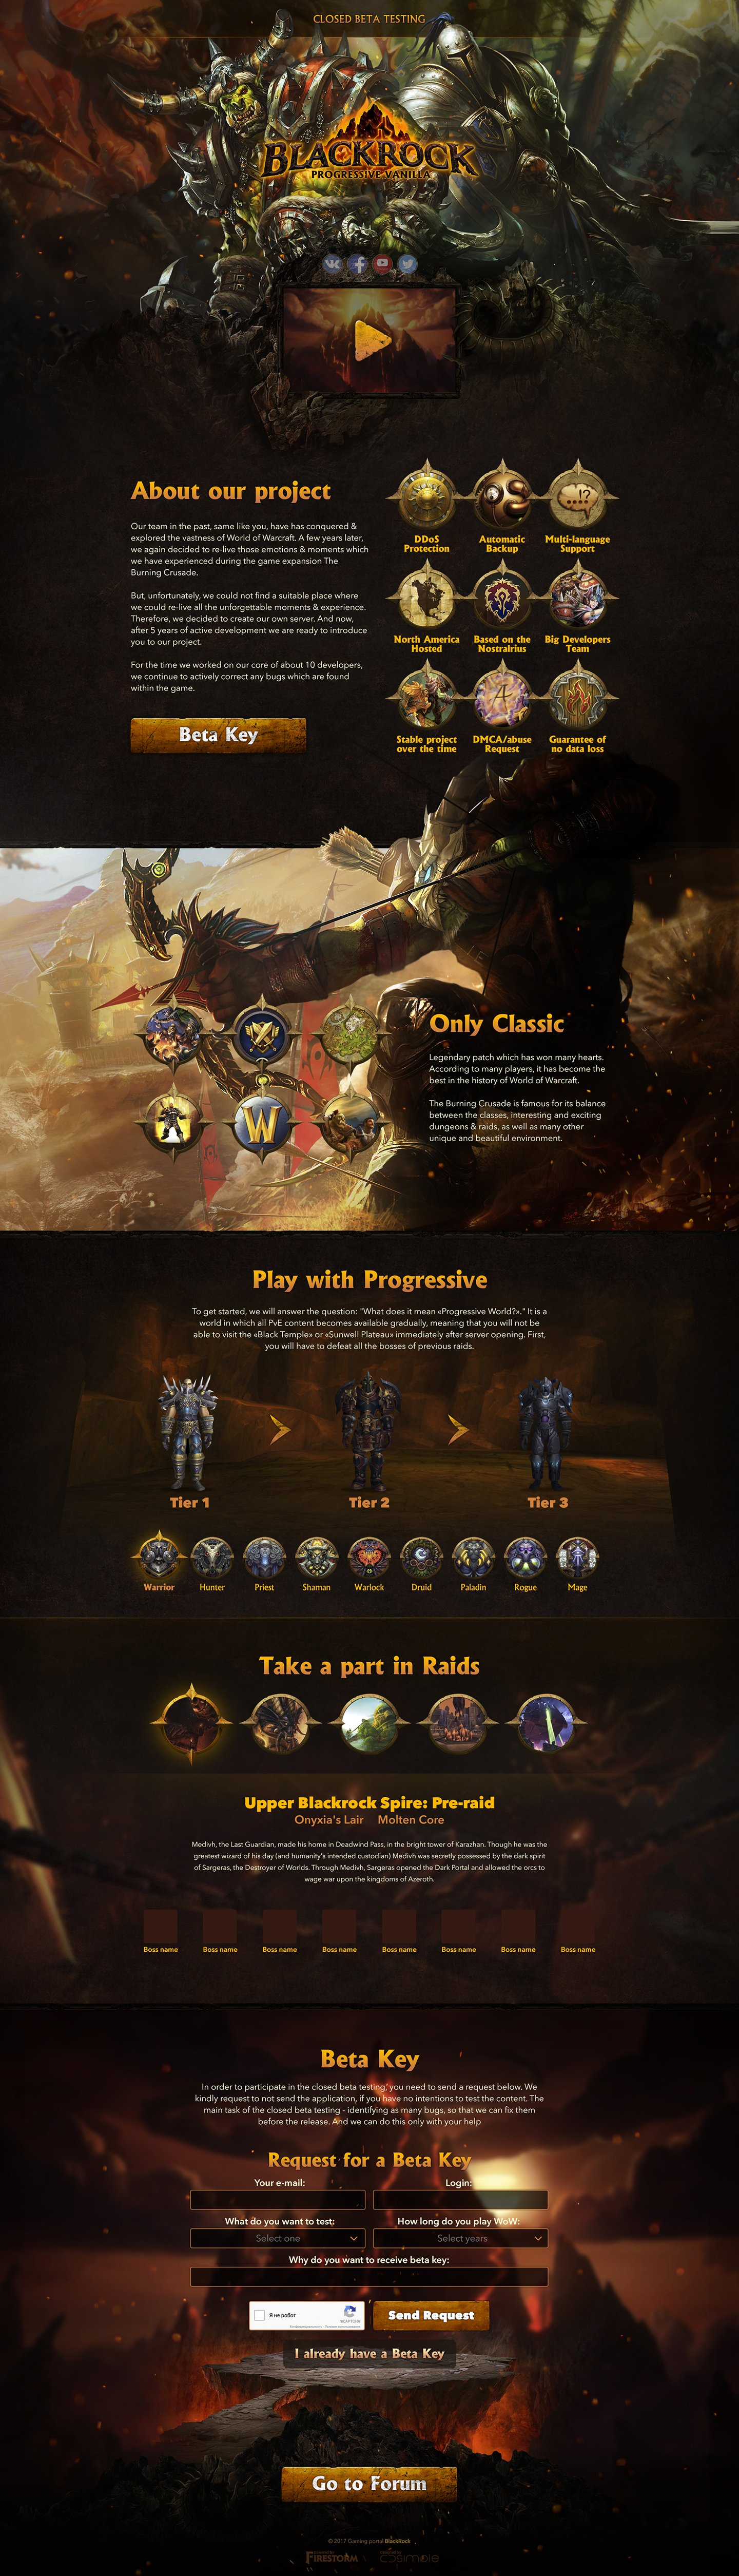 BlackRock > Landing page for private server World of Warcraft